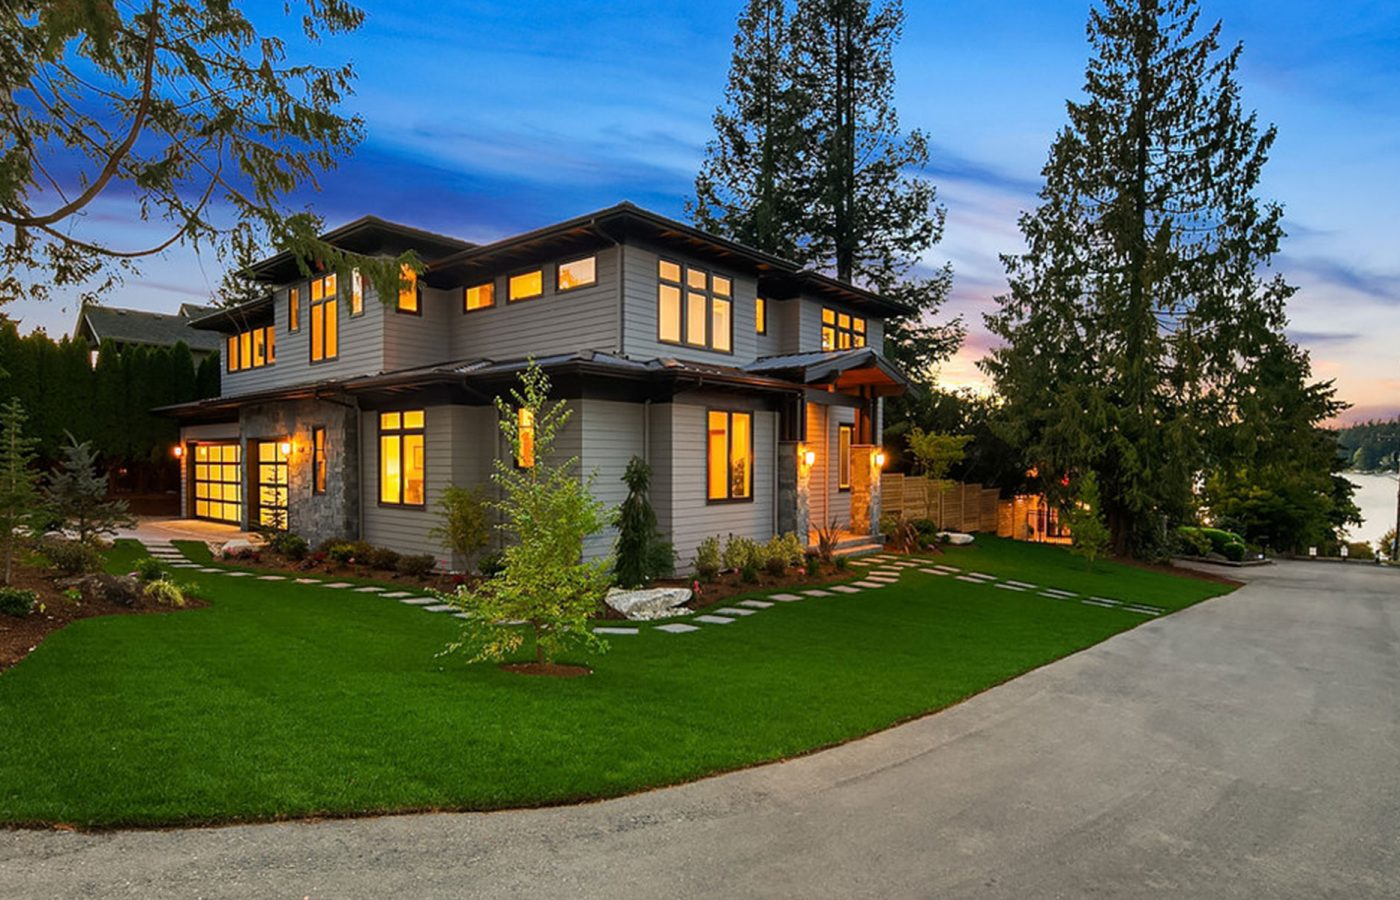 MN Custom Homes can help you leave your legacy